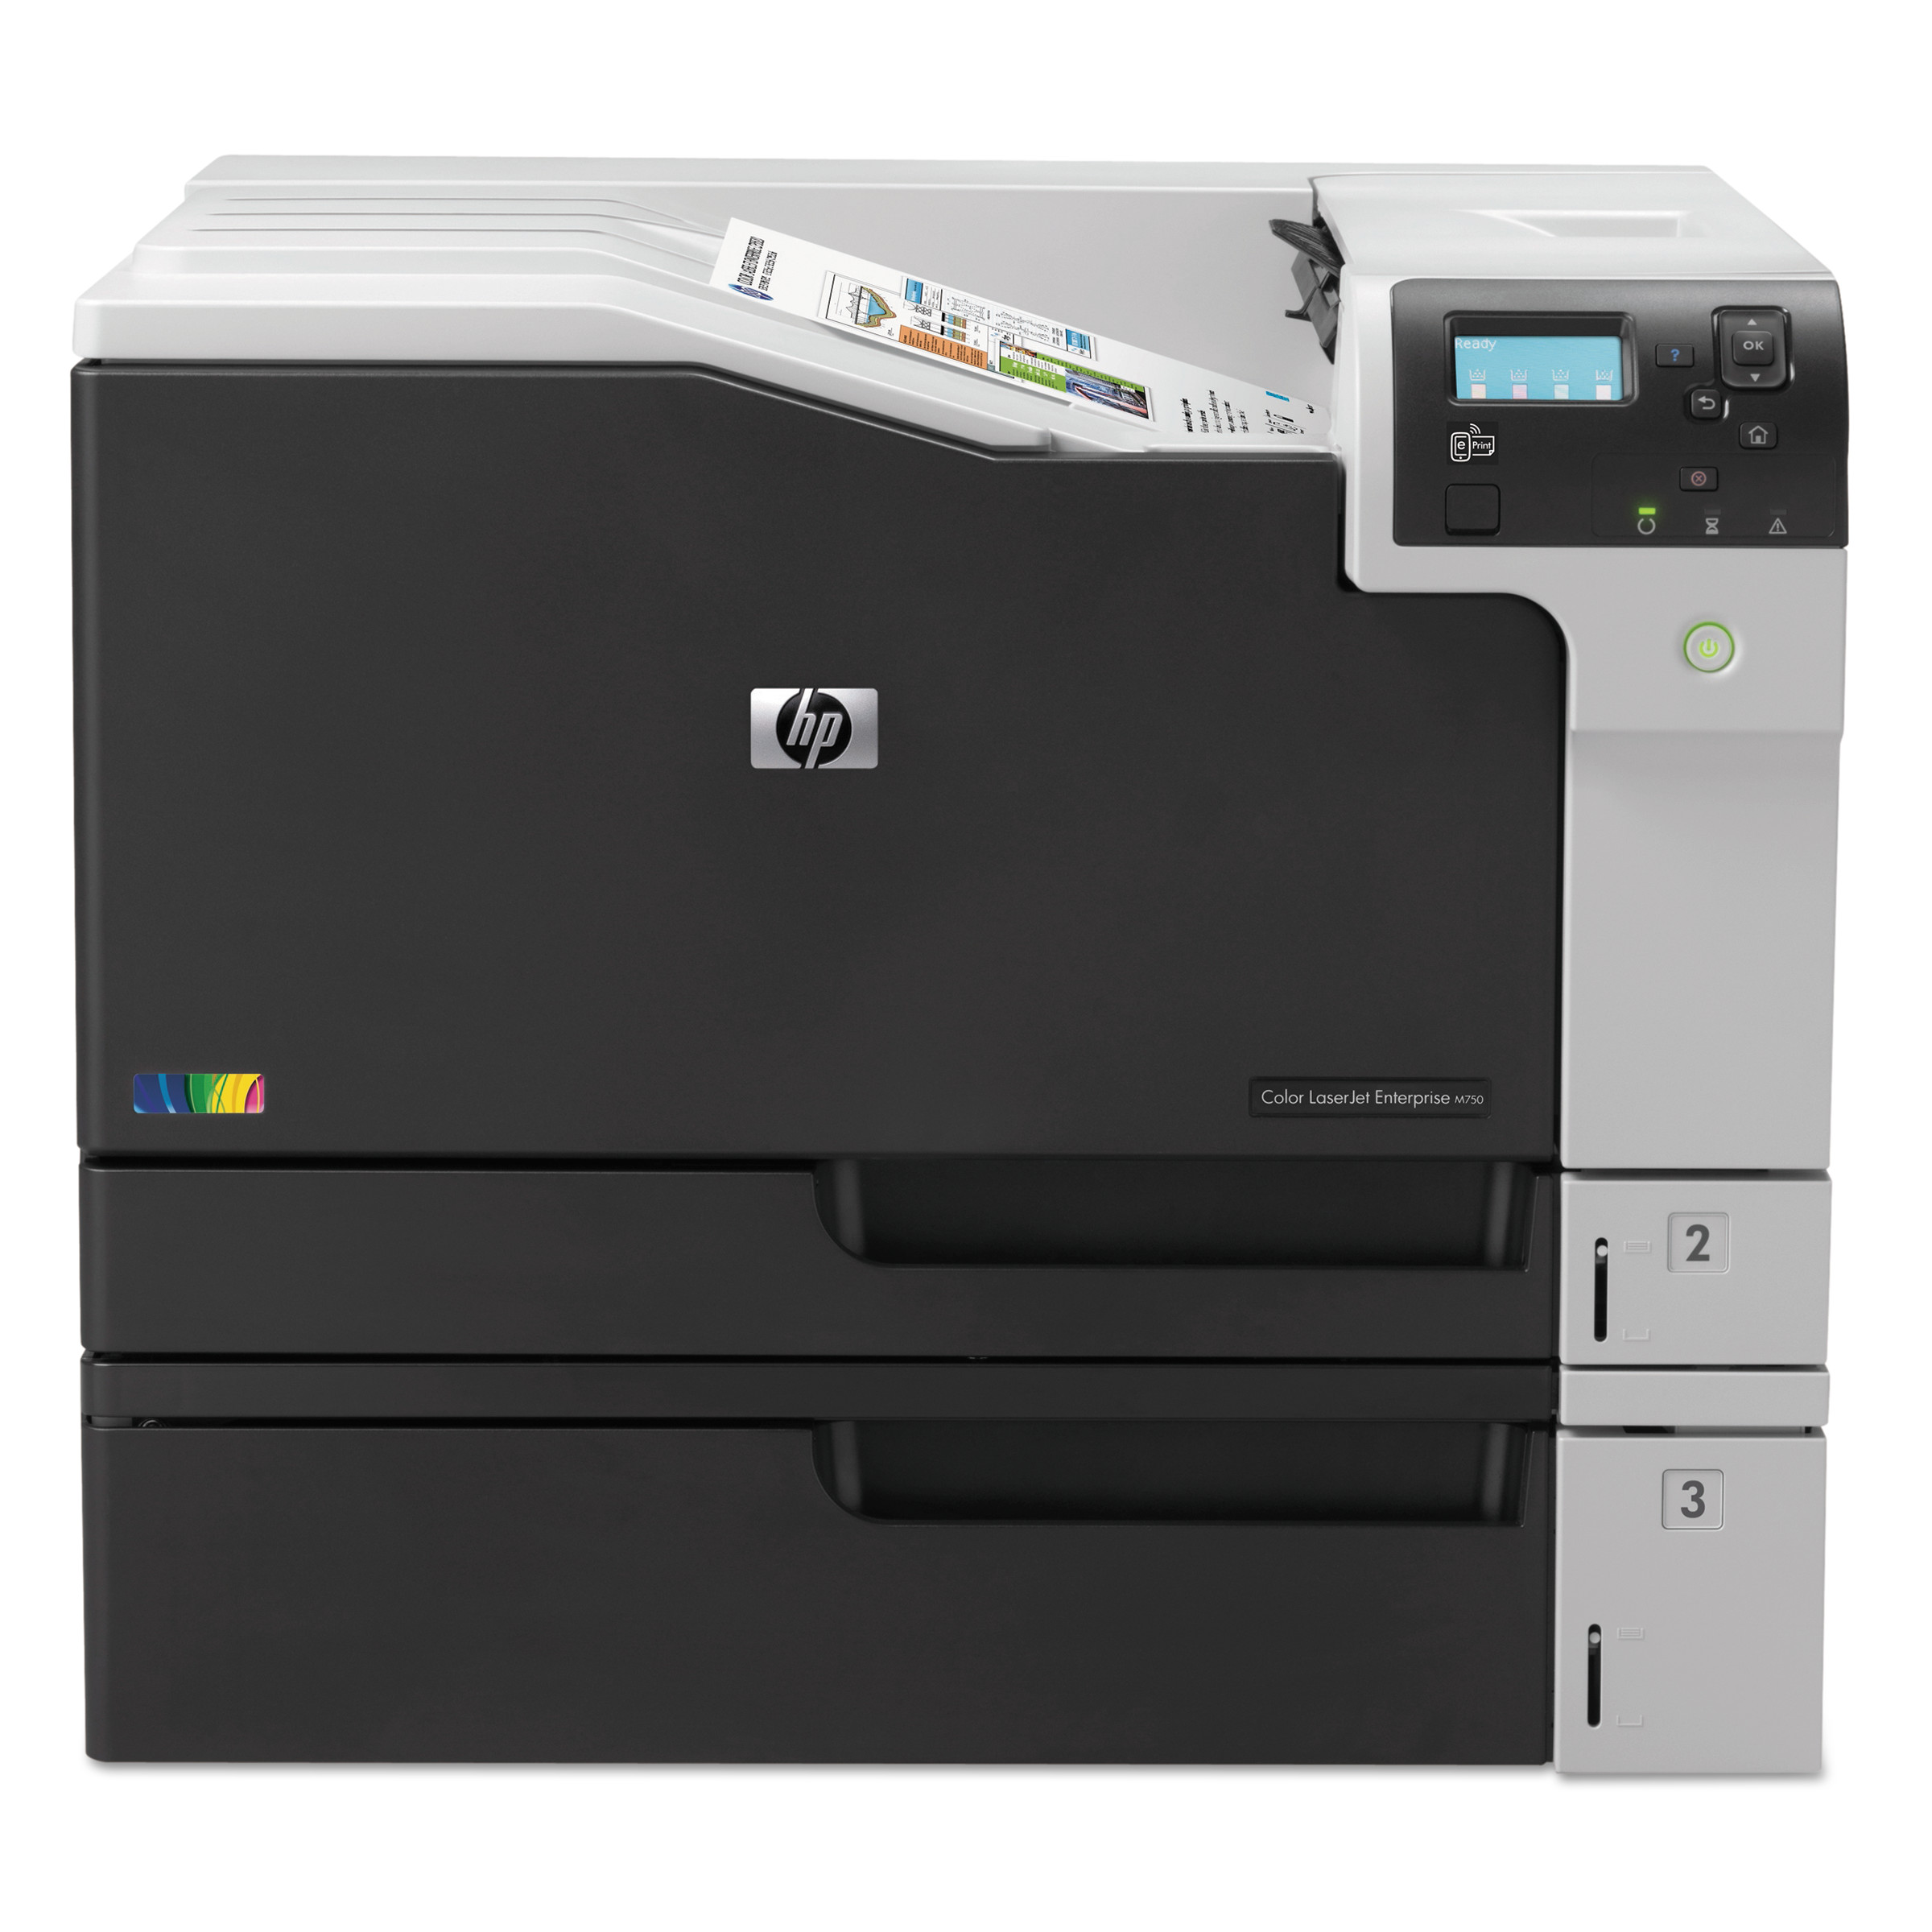 HP Color LaserJet Enterprise M750dn Laser Printer by HP